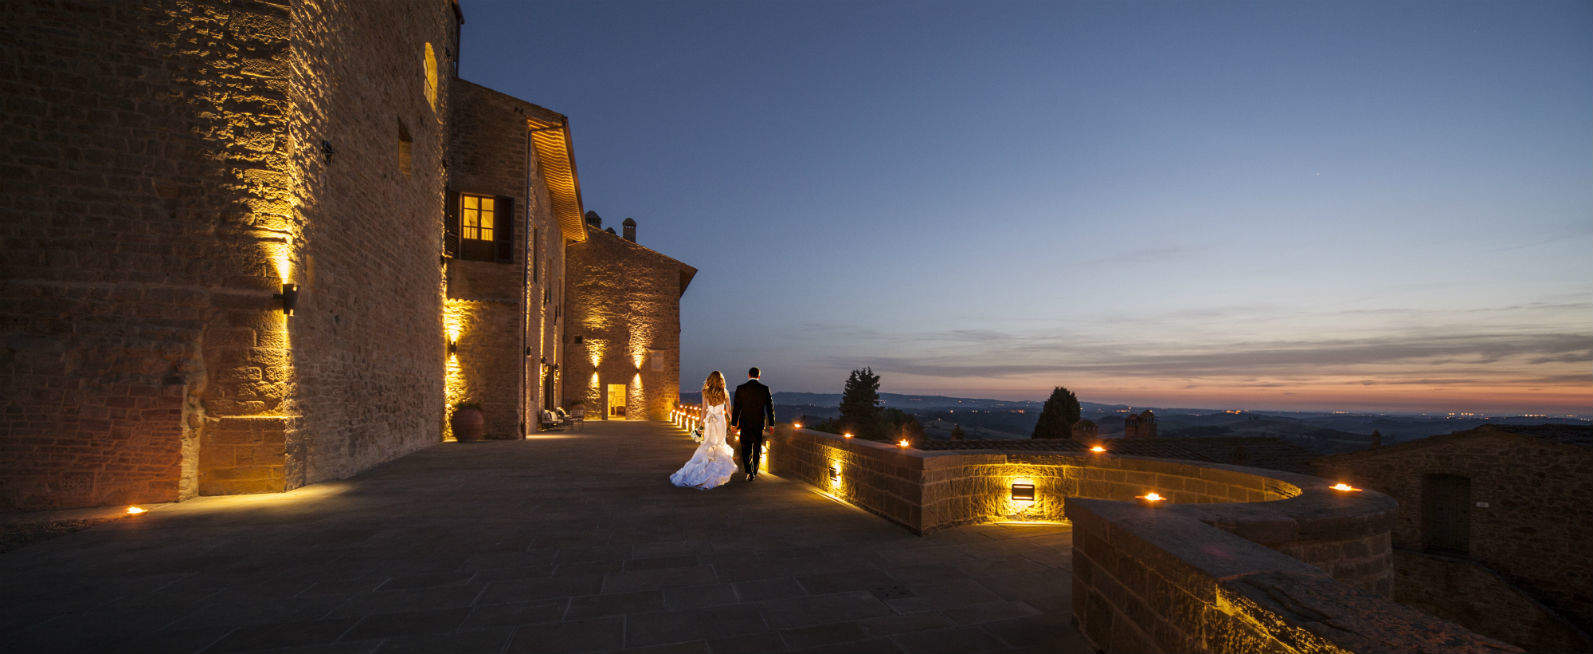 Matrimonio Country Chic Toscana : Toscana resort castelfalfi la location perfetta per un